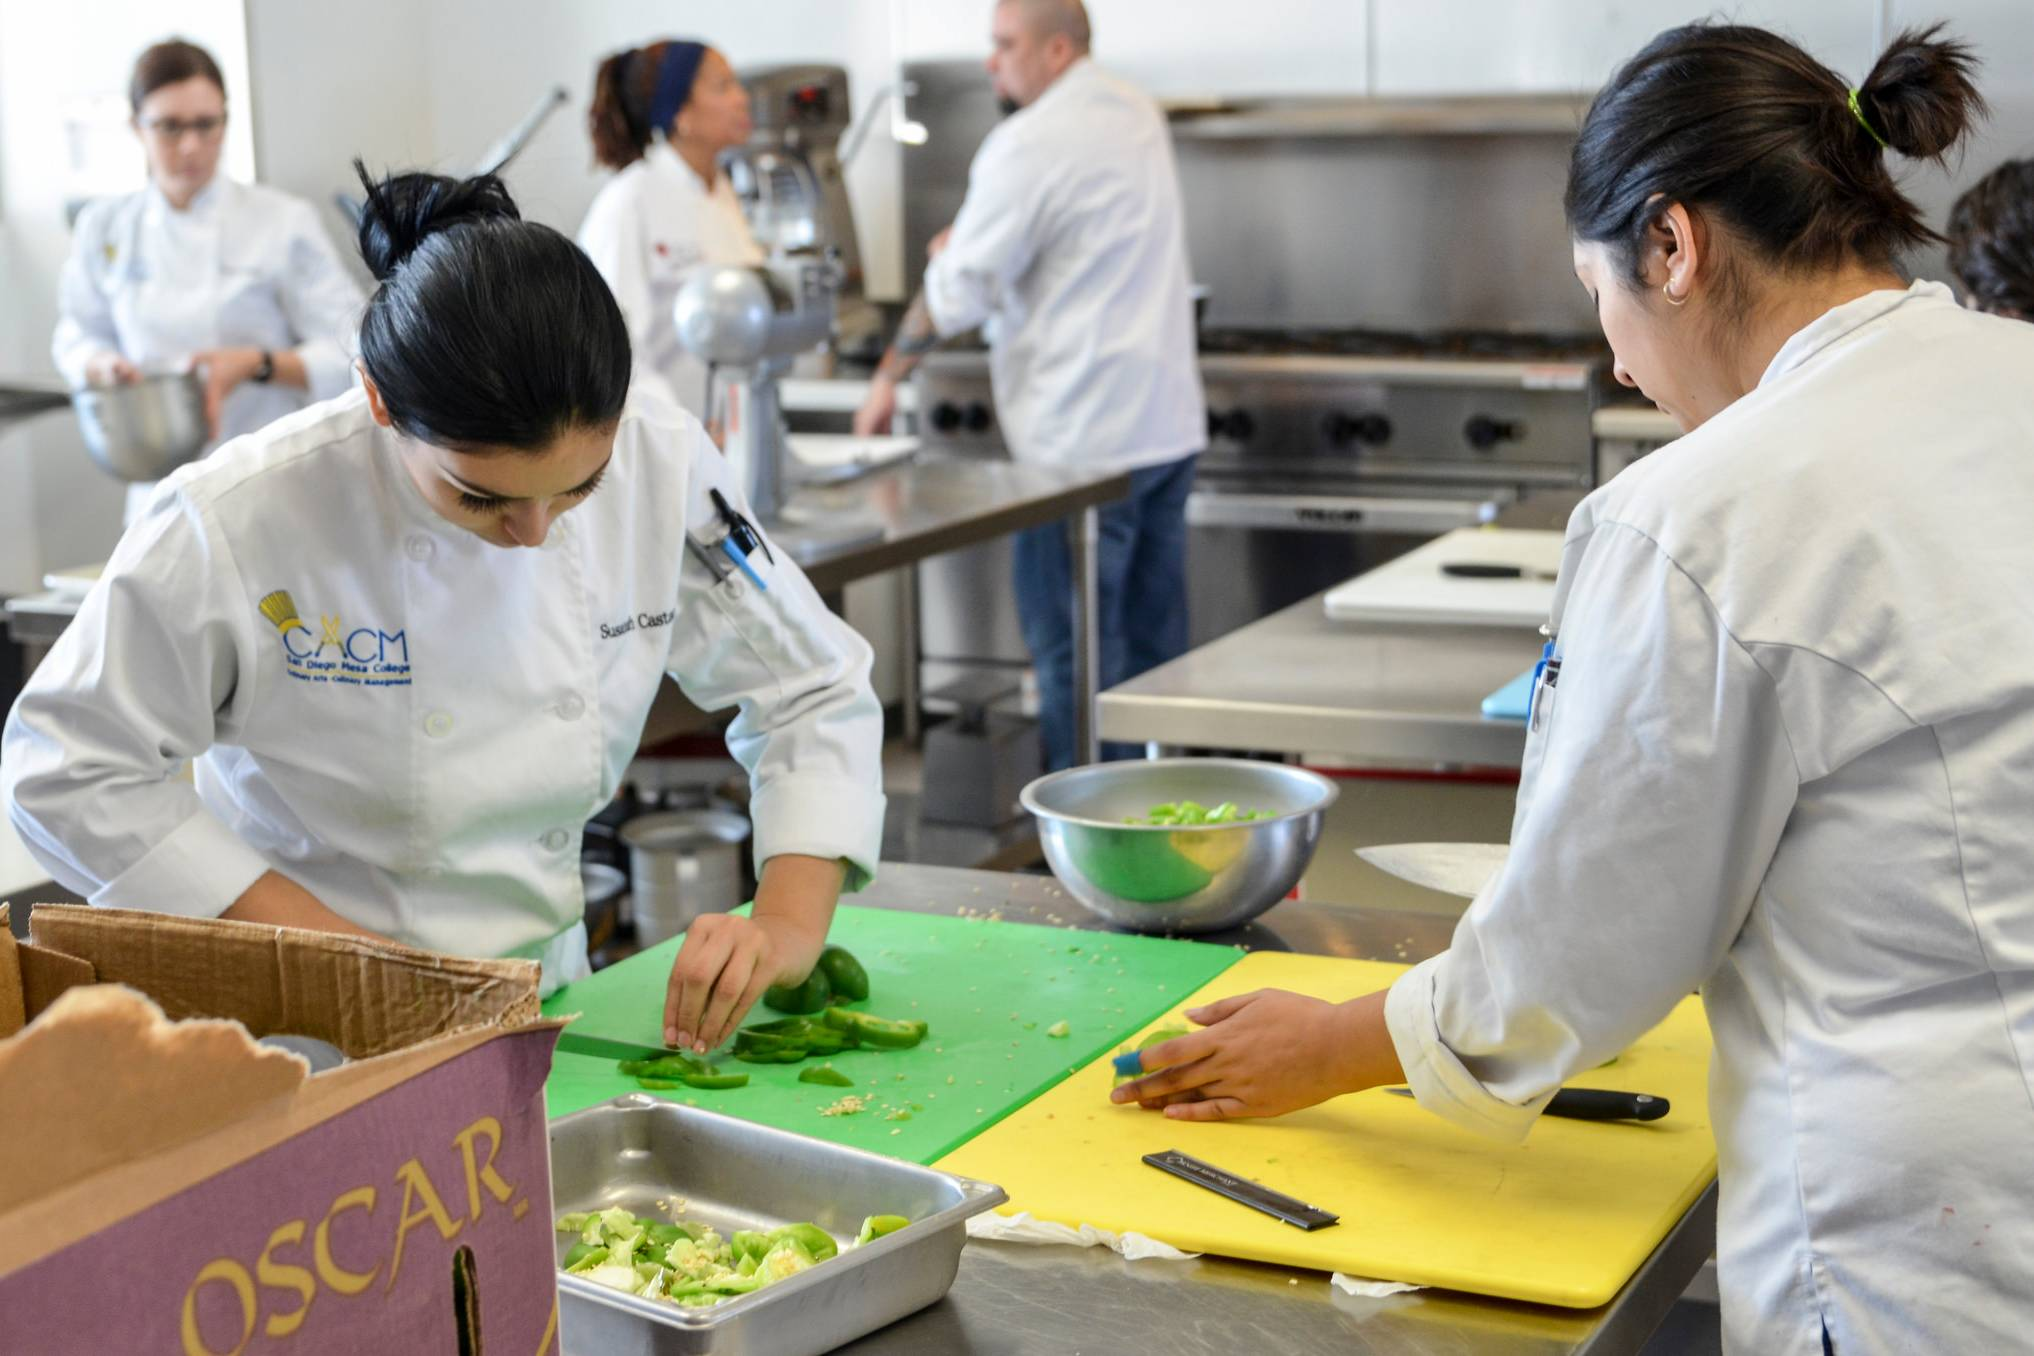 San Diego Mesa College's Culinary Arts/Management students, faculty and alumni will celebrate their new home in the Culinary Outlook at Mesa Commons with a an exciting fundraiser on Thursday, April 6 from 5:30 to 8:30 p.m.